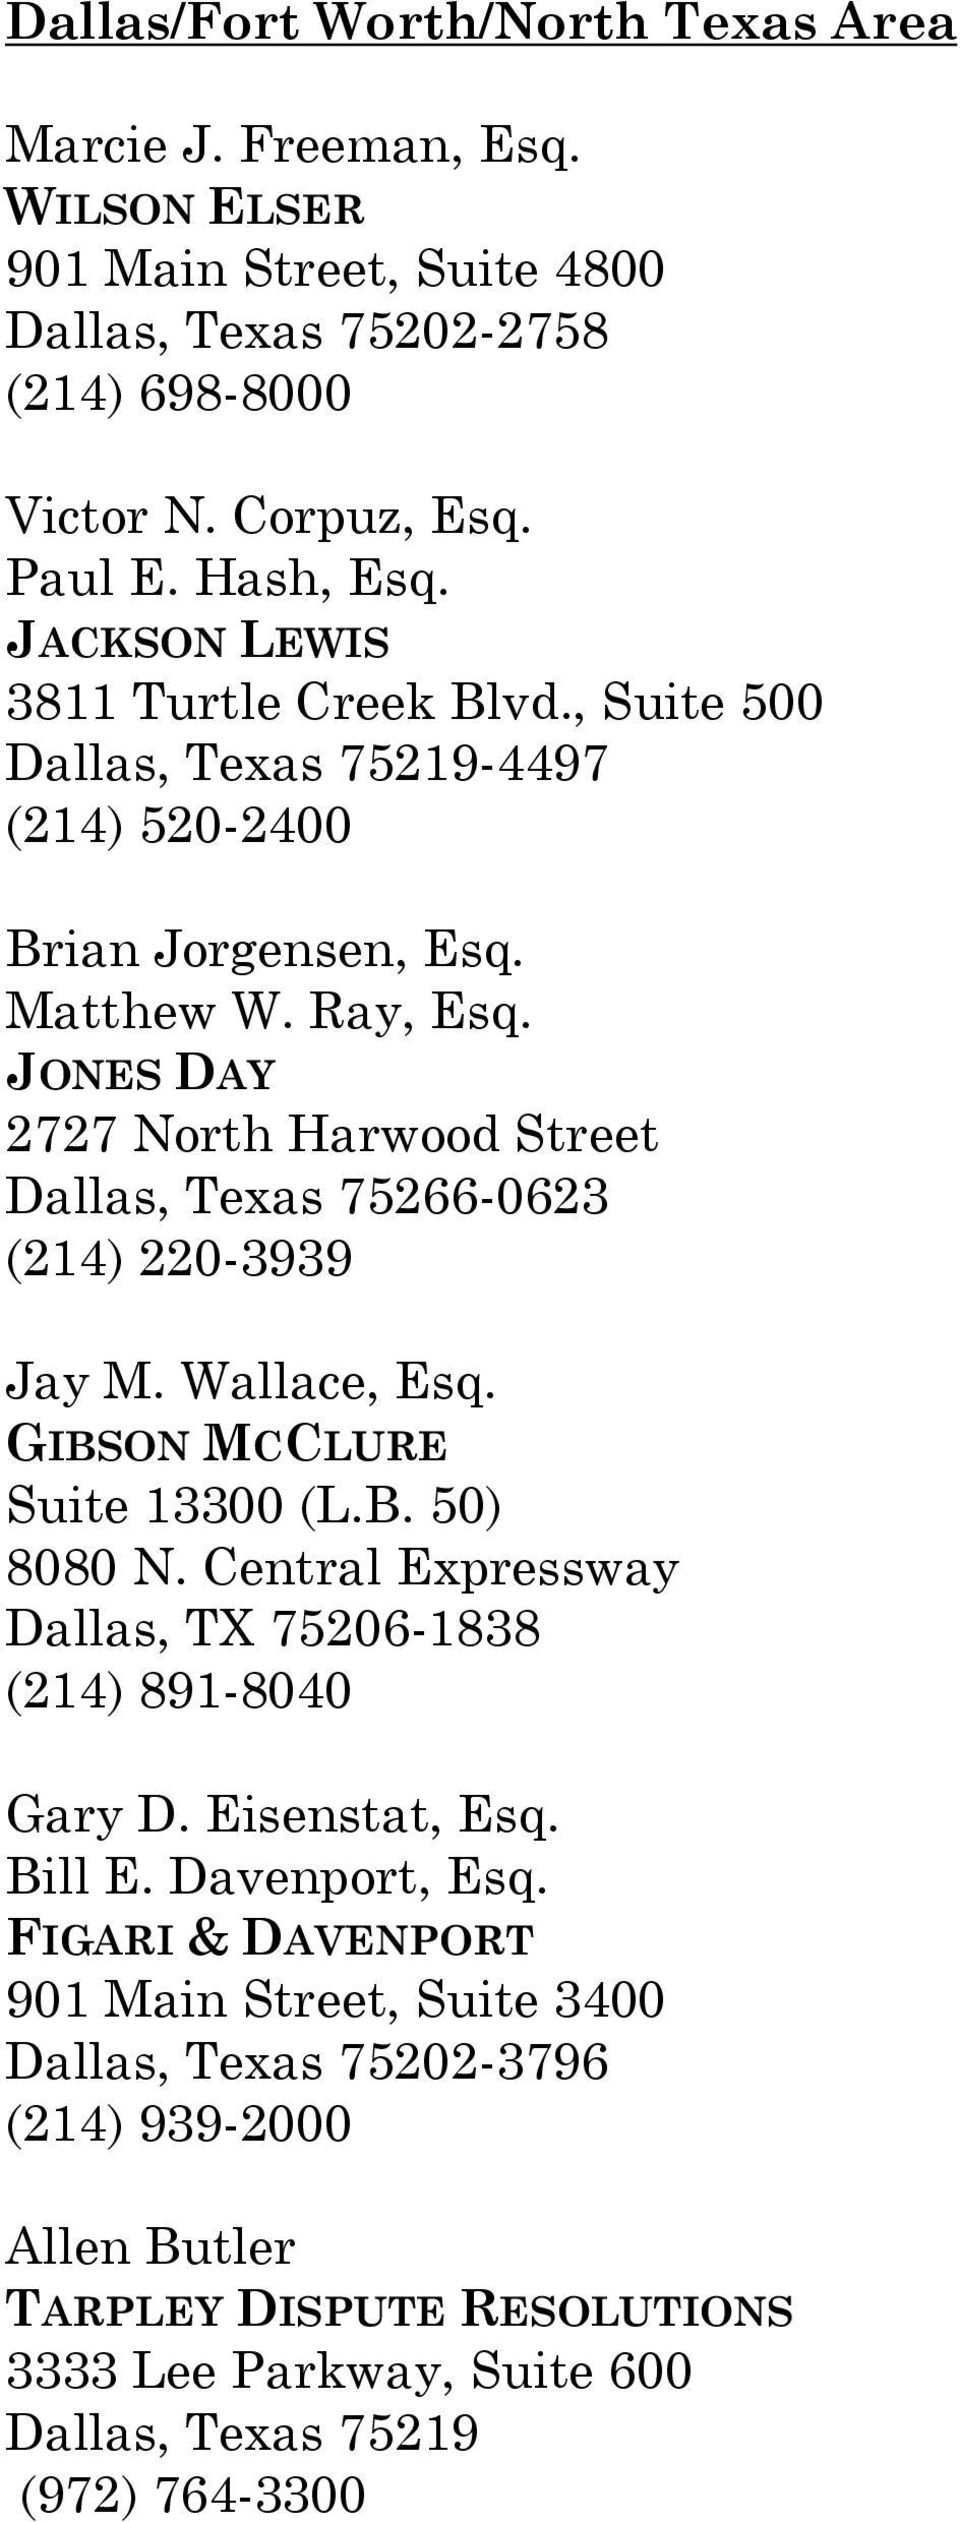 JONES DAY 2727 North Harwood Street Dallas, Texas 75266-0623 (214) 220-3939 Jay M. Wallace, Esq. GIBSON MCCLURE Suite 13300 (L.B. 50) 8080 N.